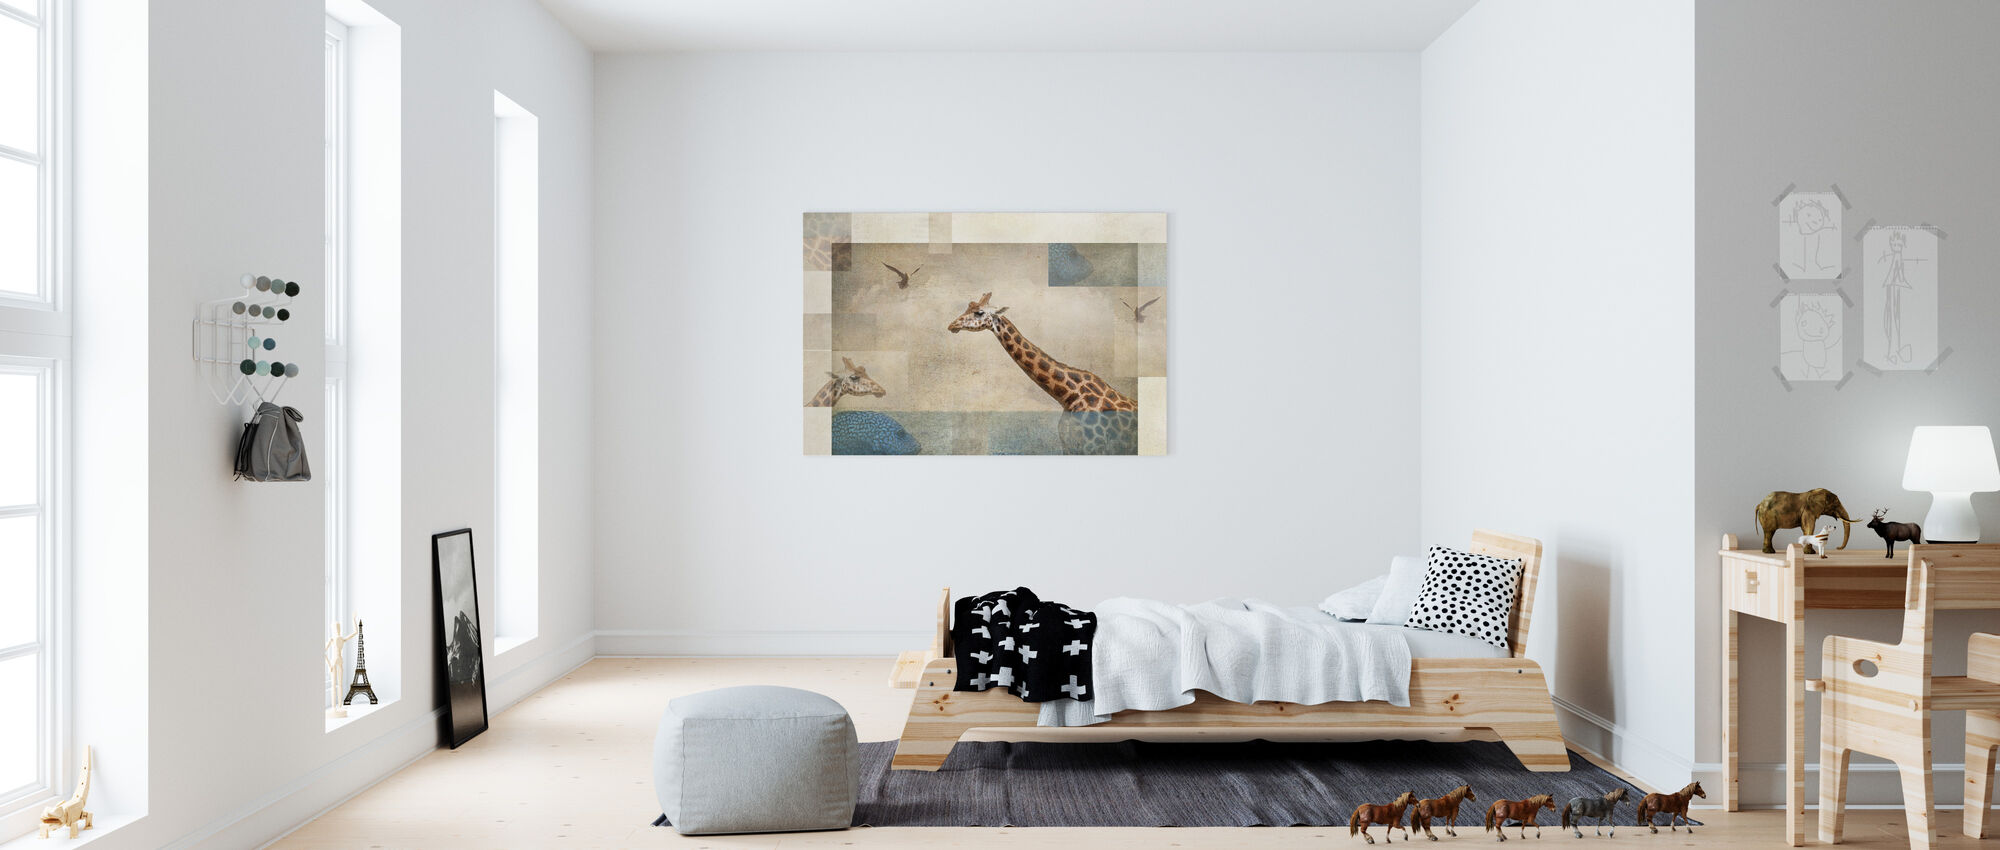 Fantasie - Canvas print - Kinderkamer